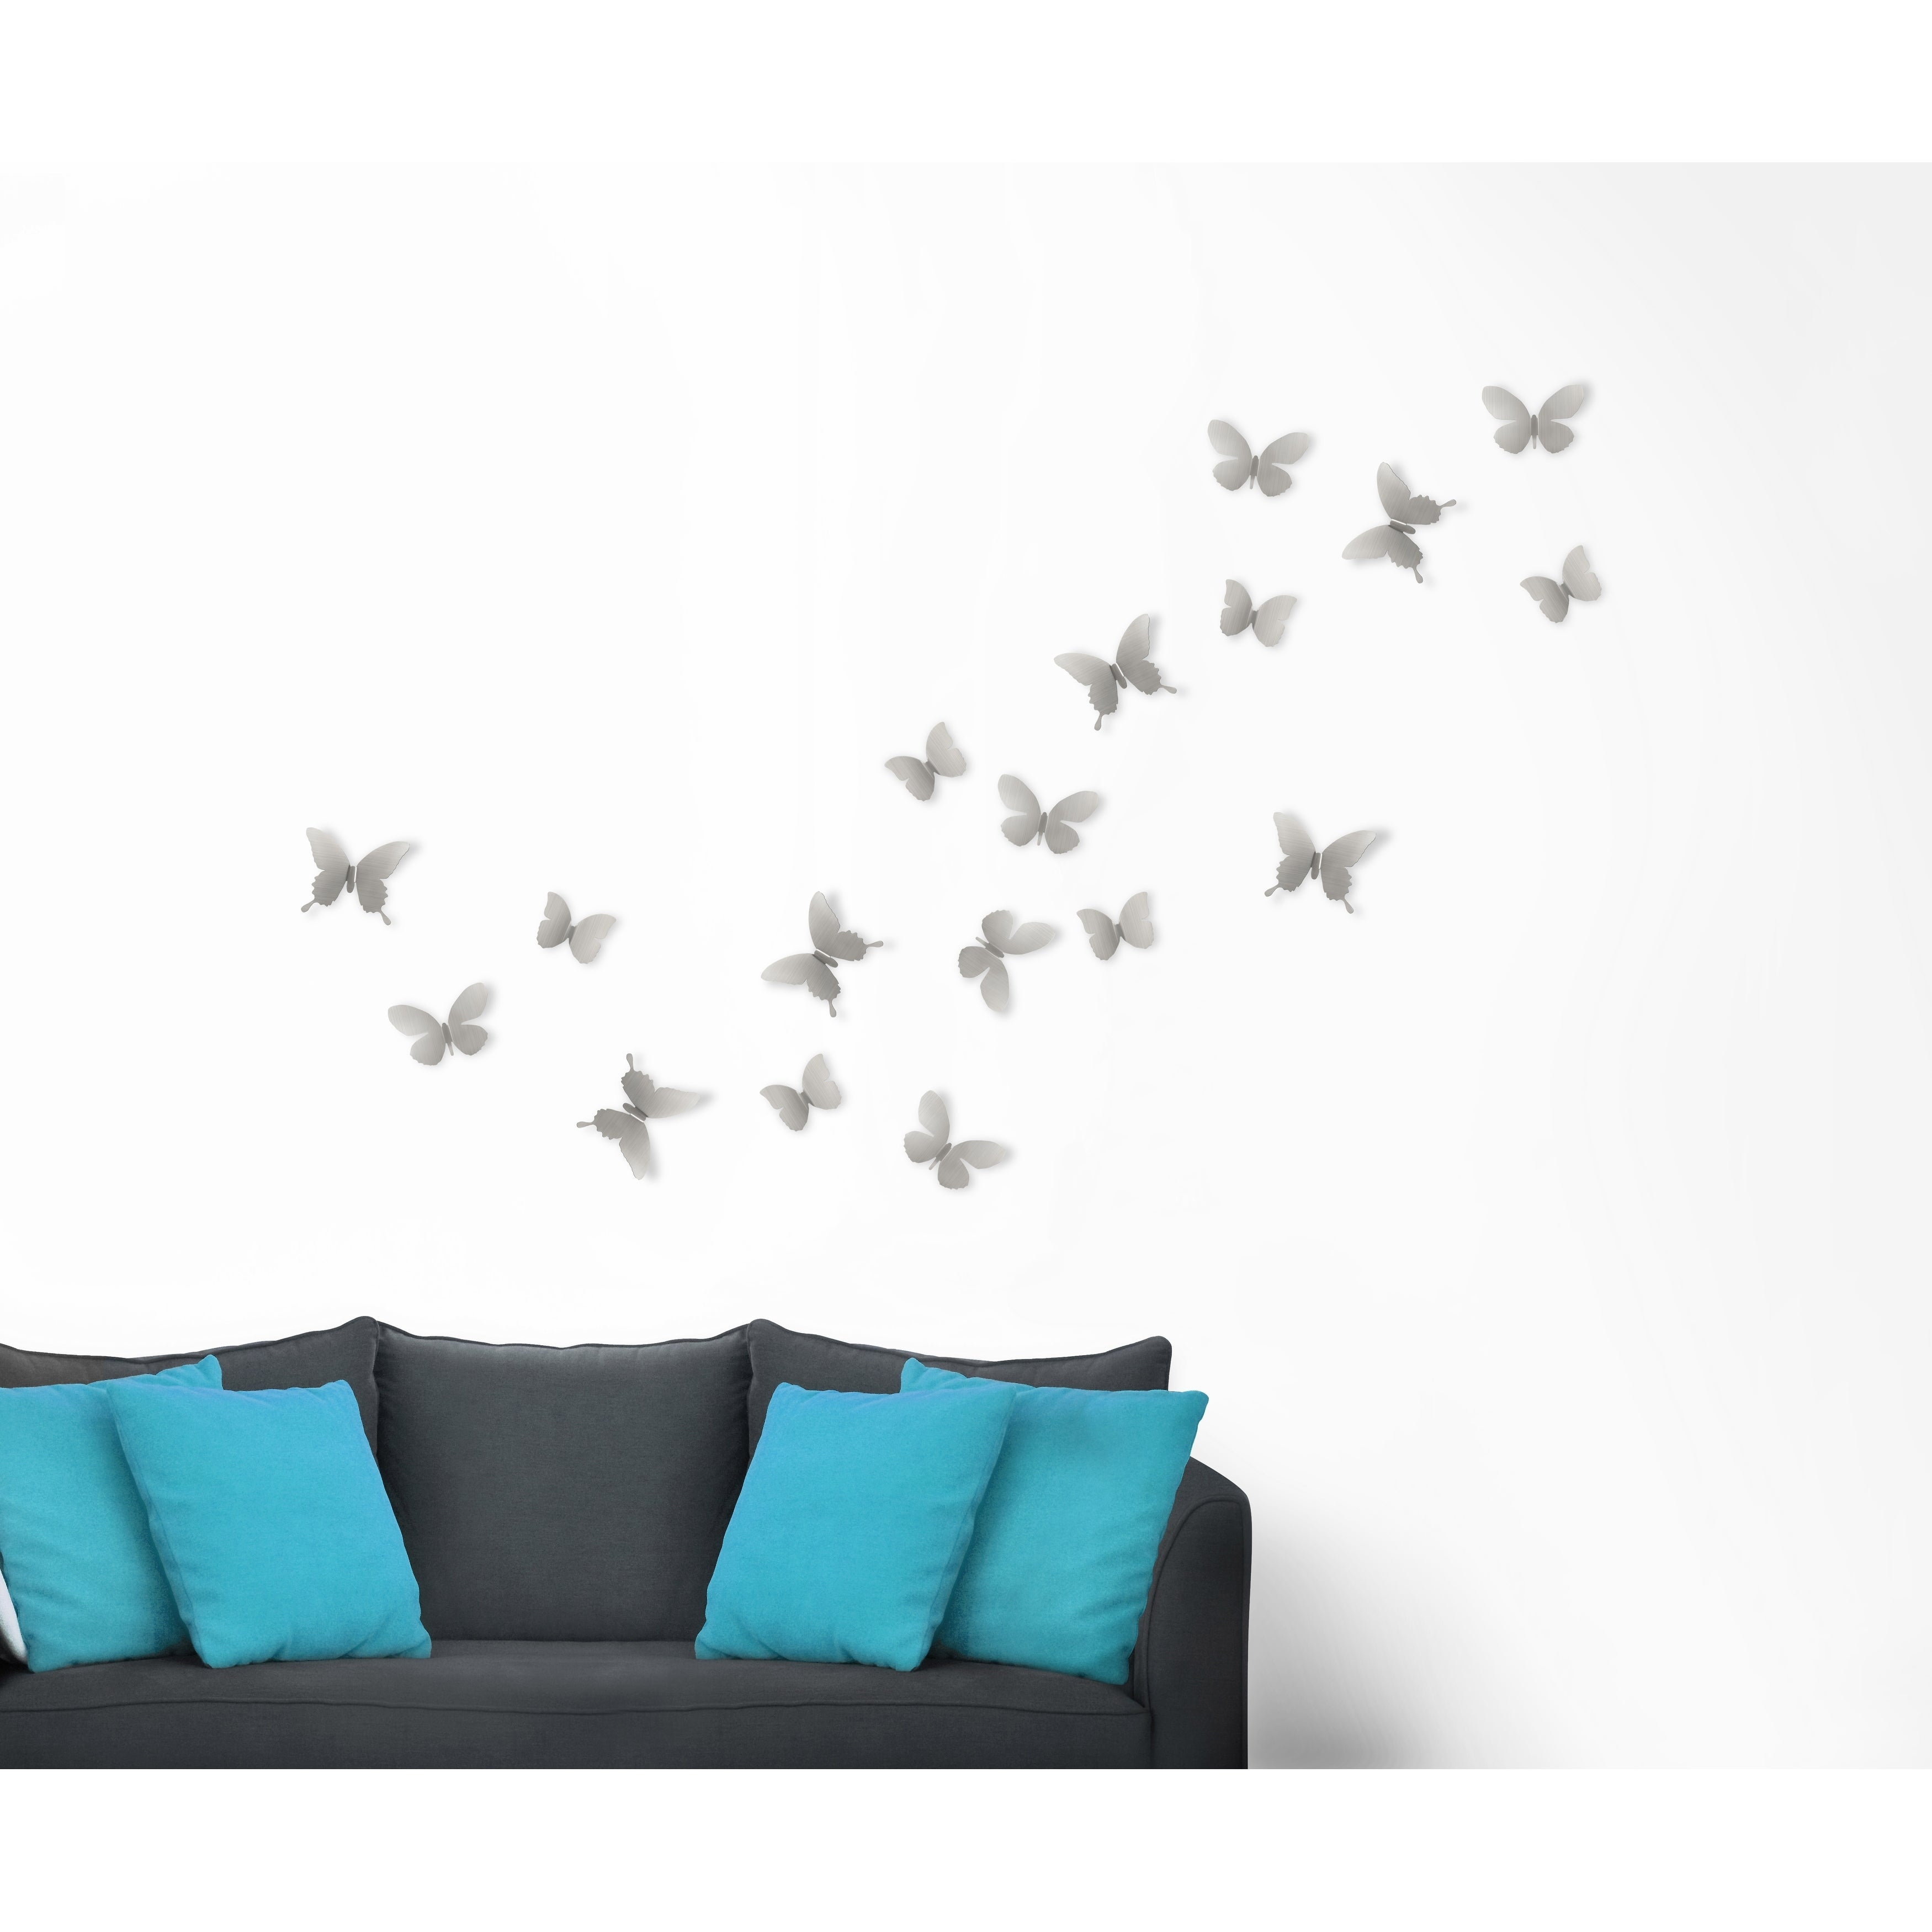 Widely Used Mariposa 9 Piece Wall Decor For Shop Umbra Mariposa Metal Wall Decor (Set Of 9) – Free Shipping On (Gallery 5 of 20)